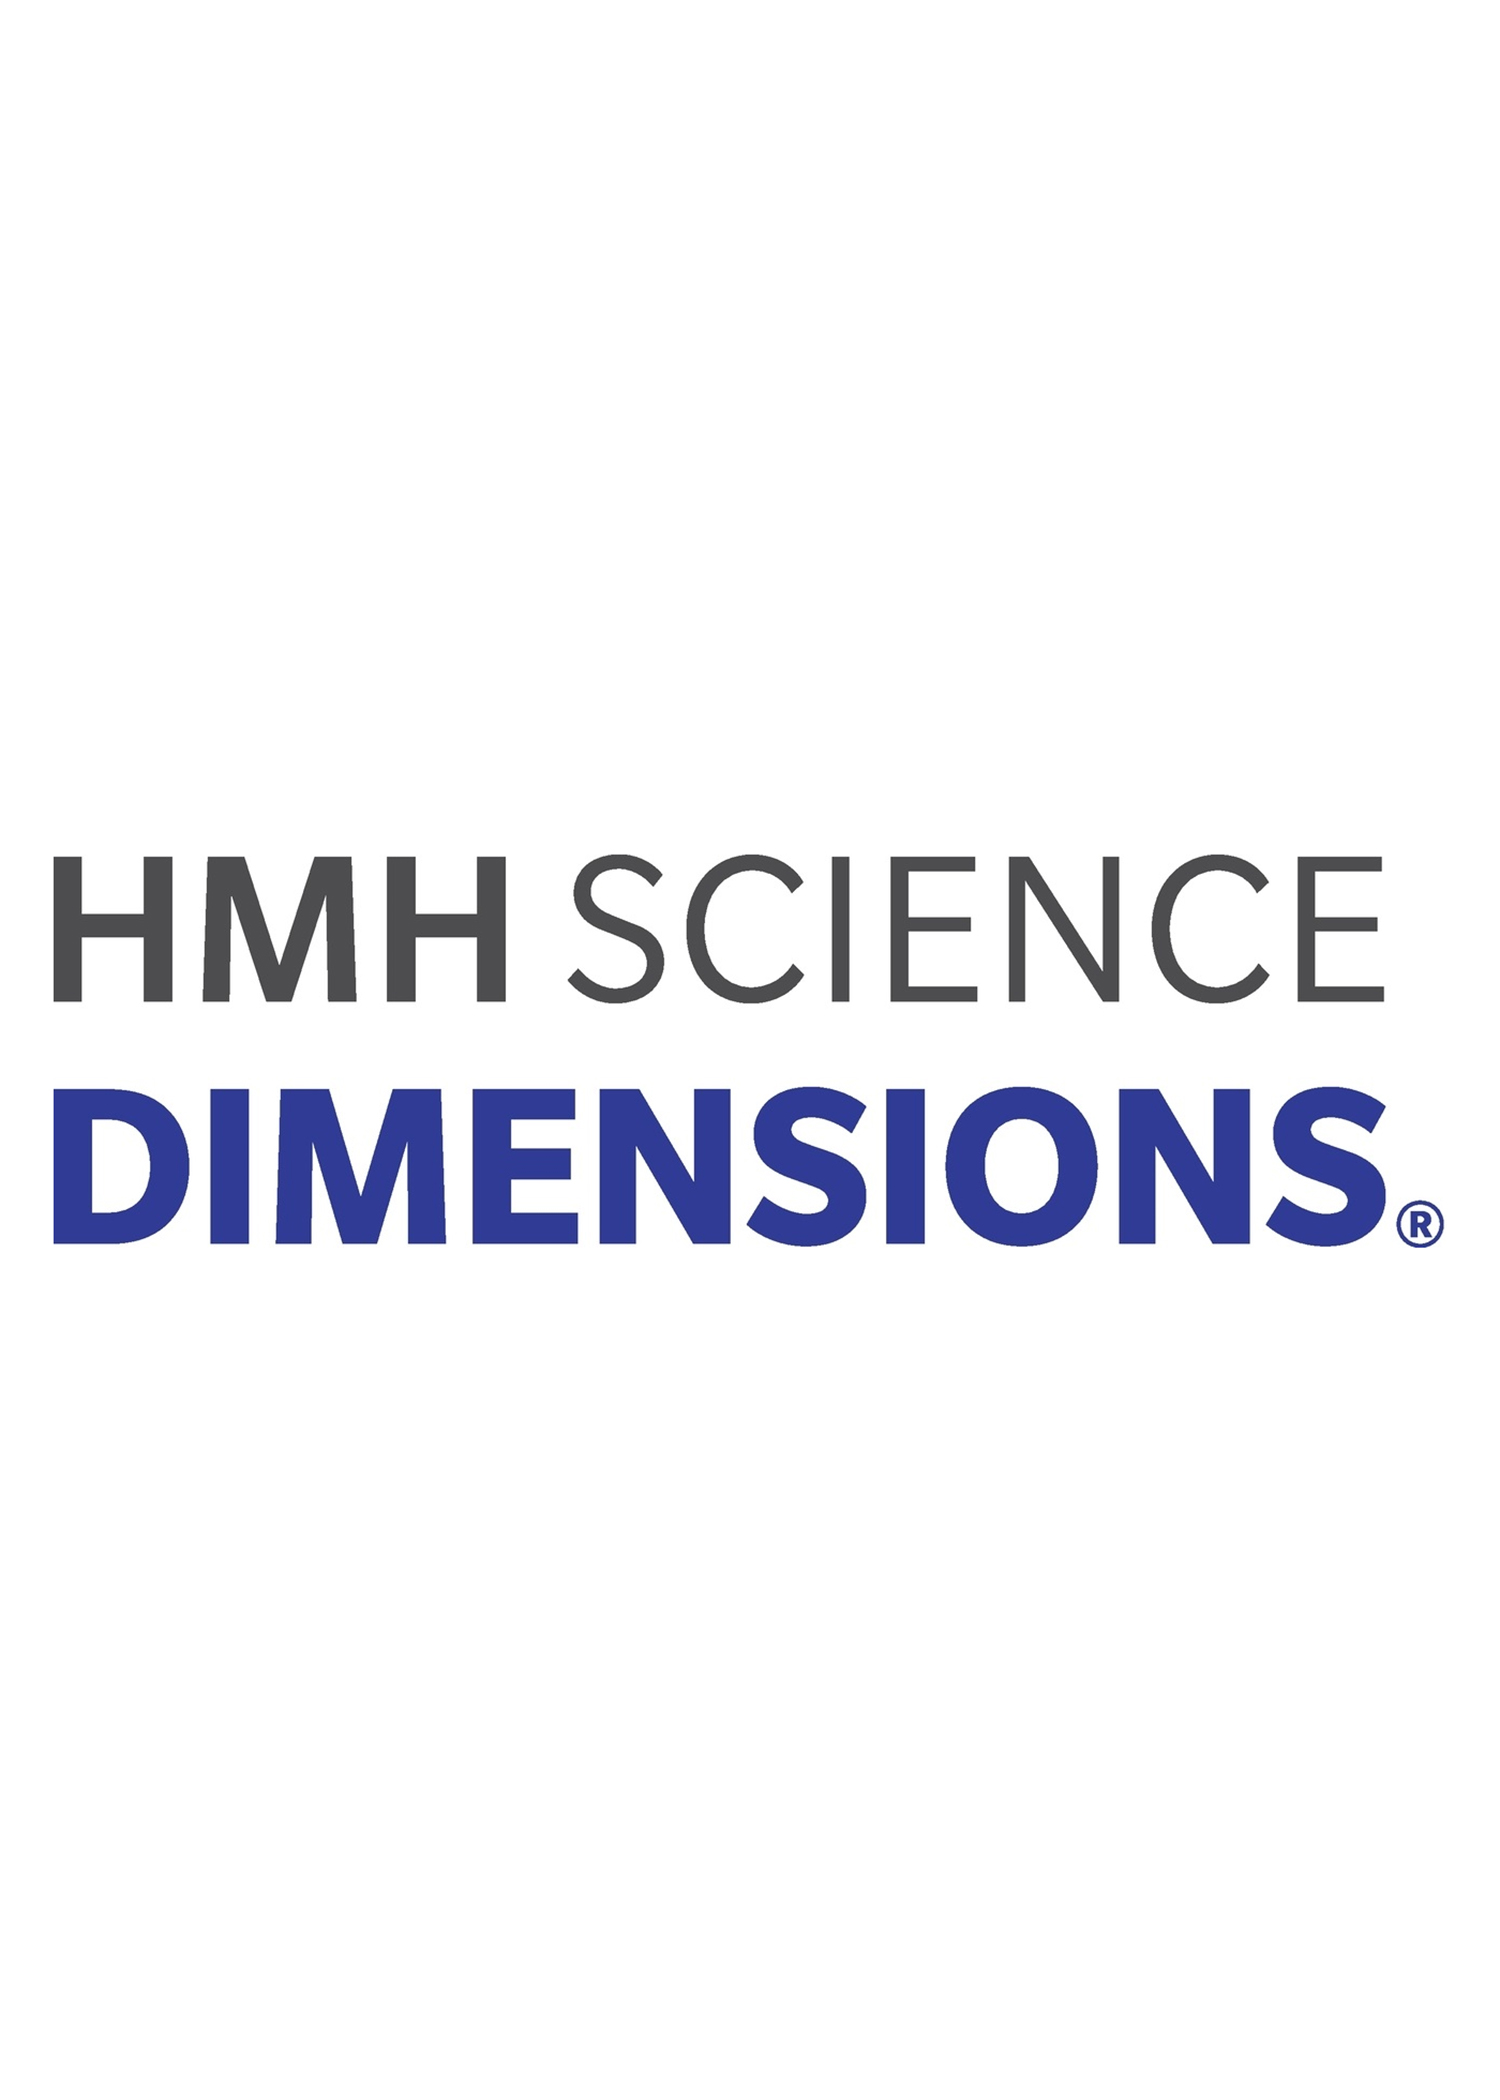 hight resolution of HMH Science Dimensions® Grades 6-8 (2018) - Sixth to Eighth Report